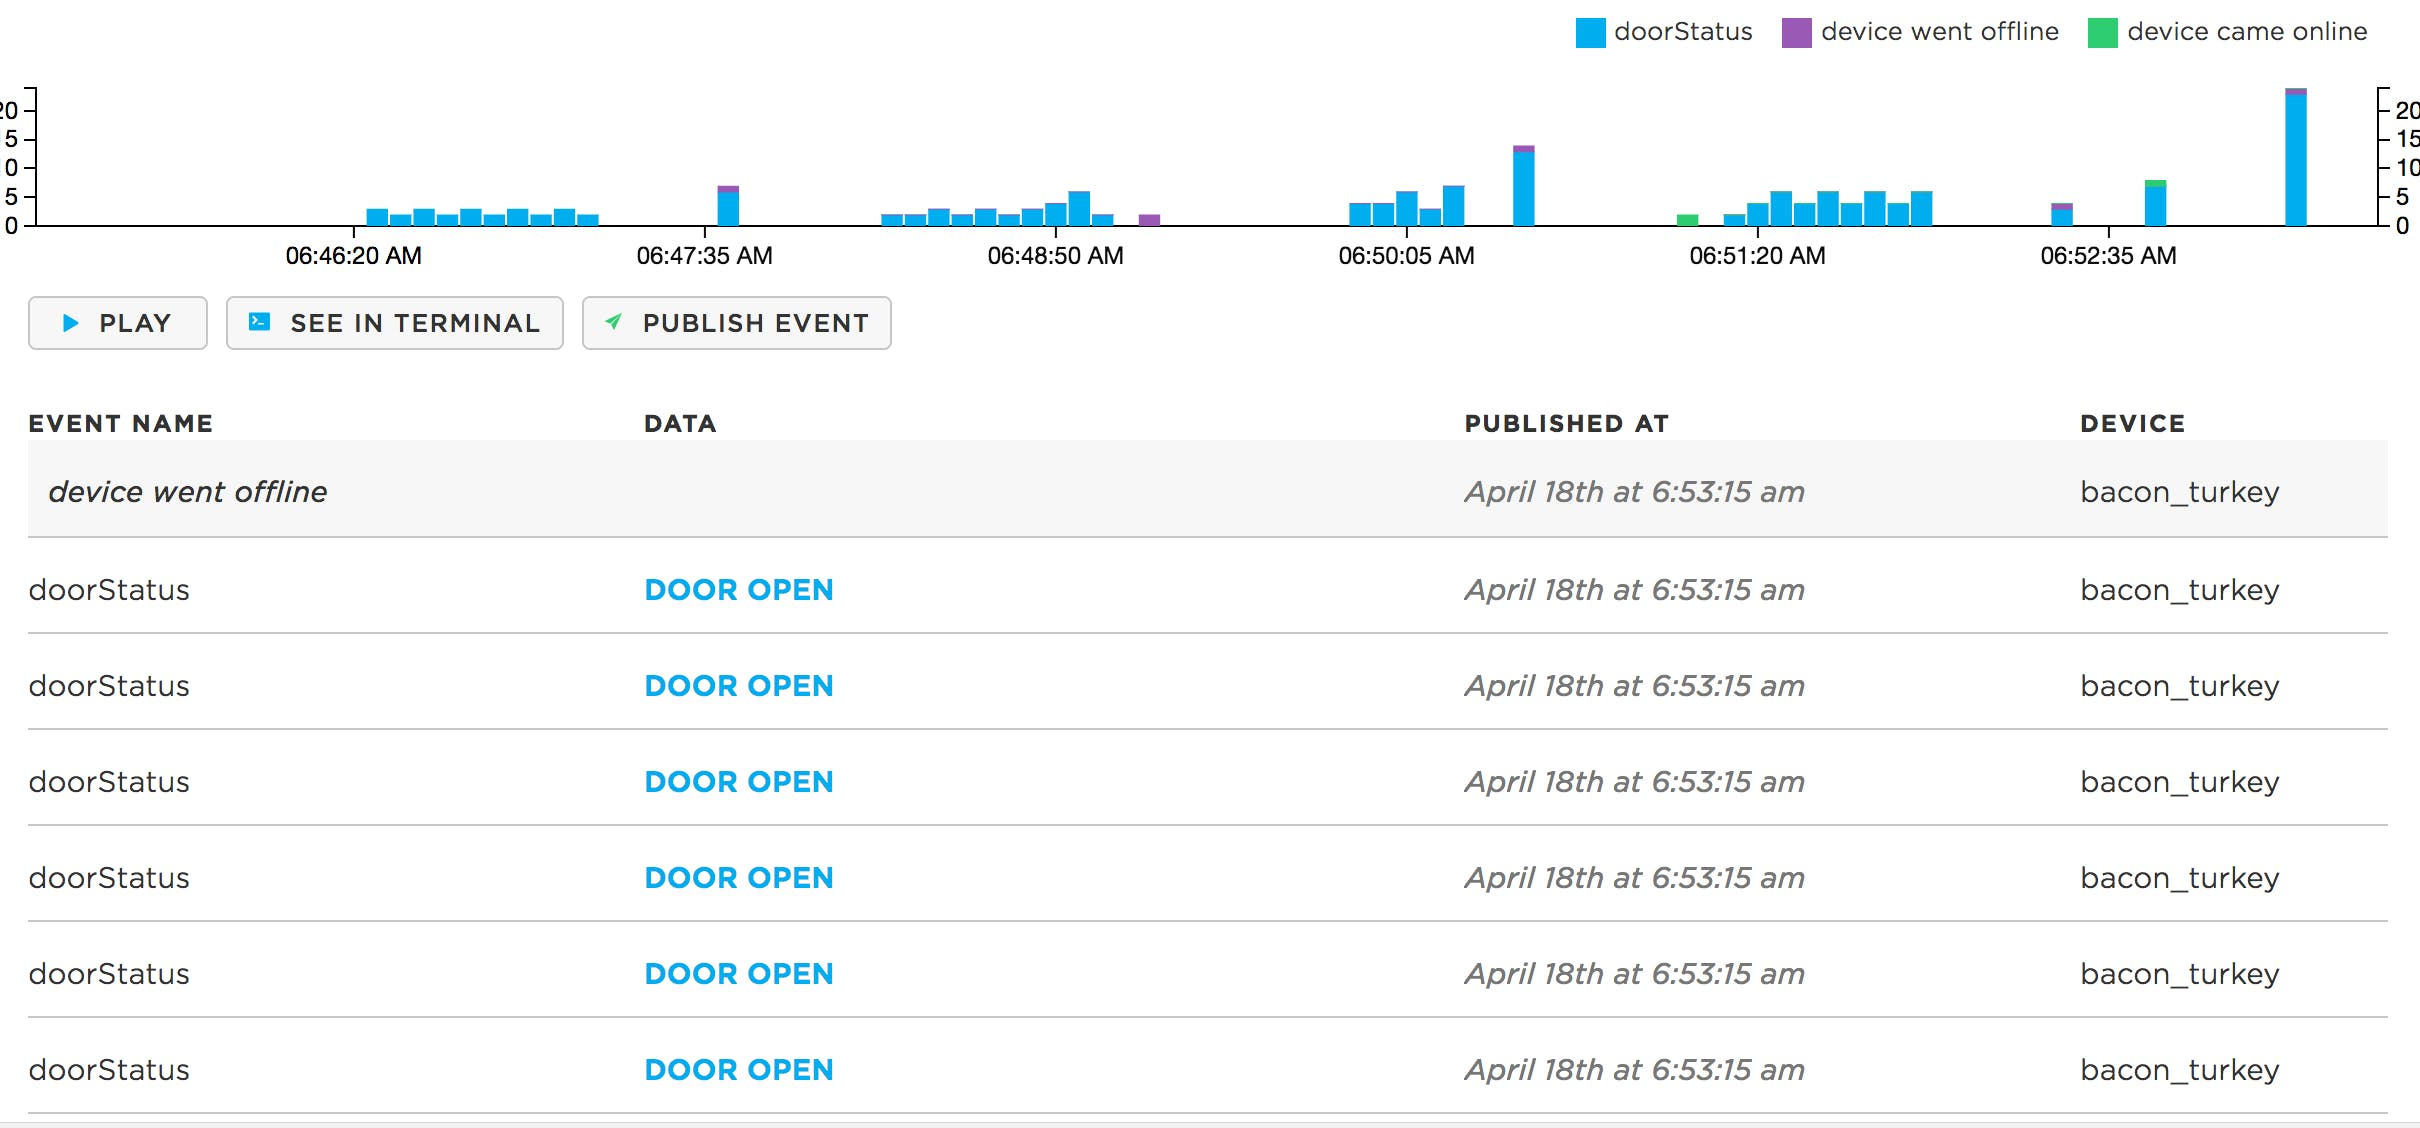 Figure 4: Reed switch data from Particle.io